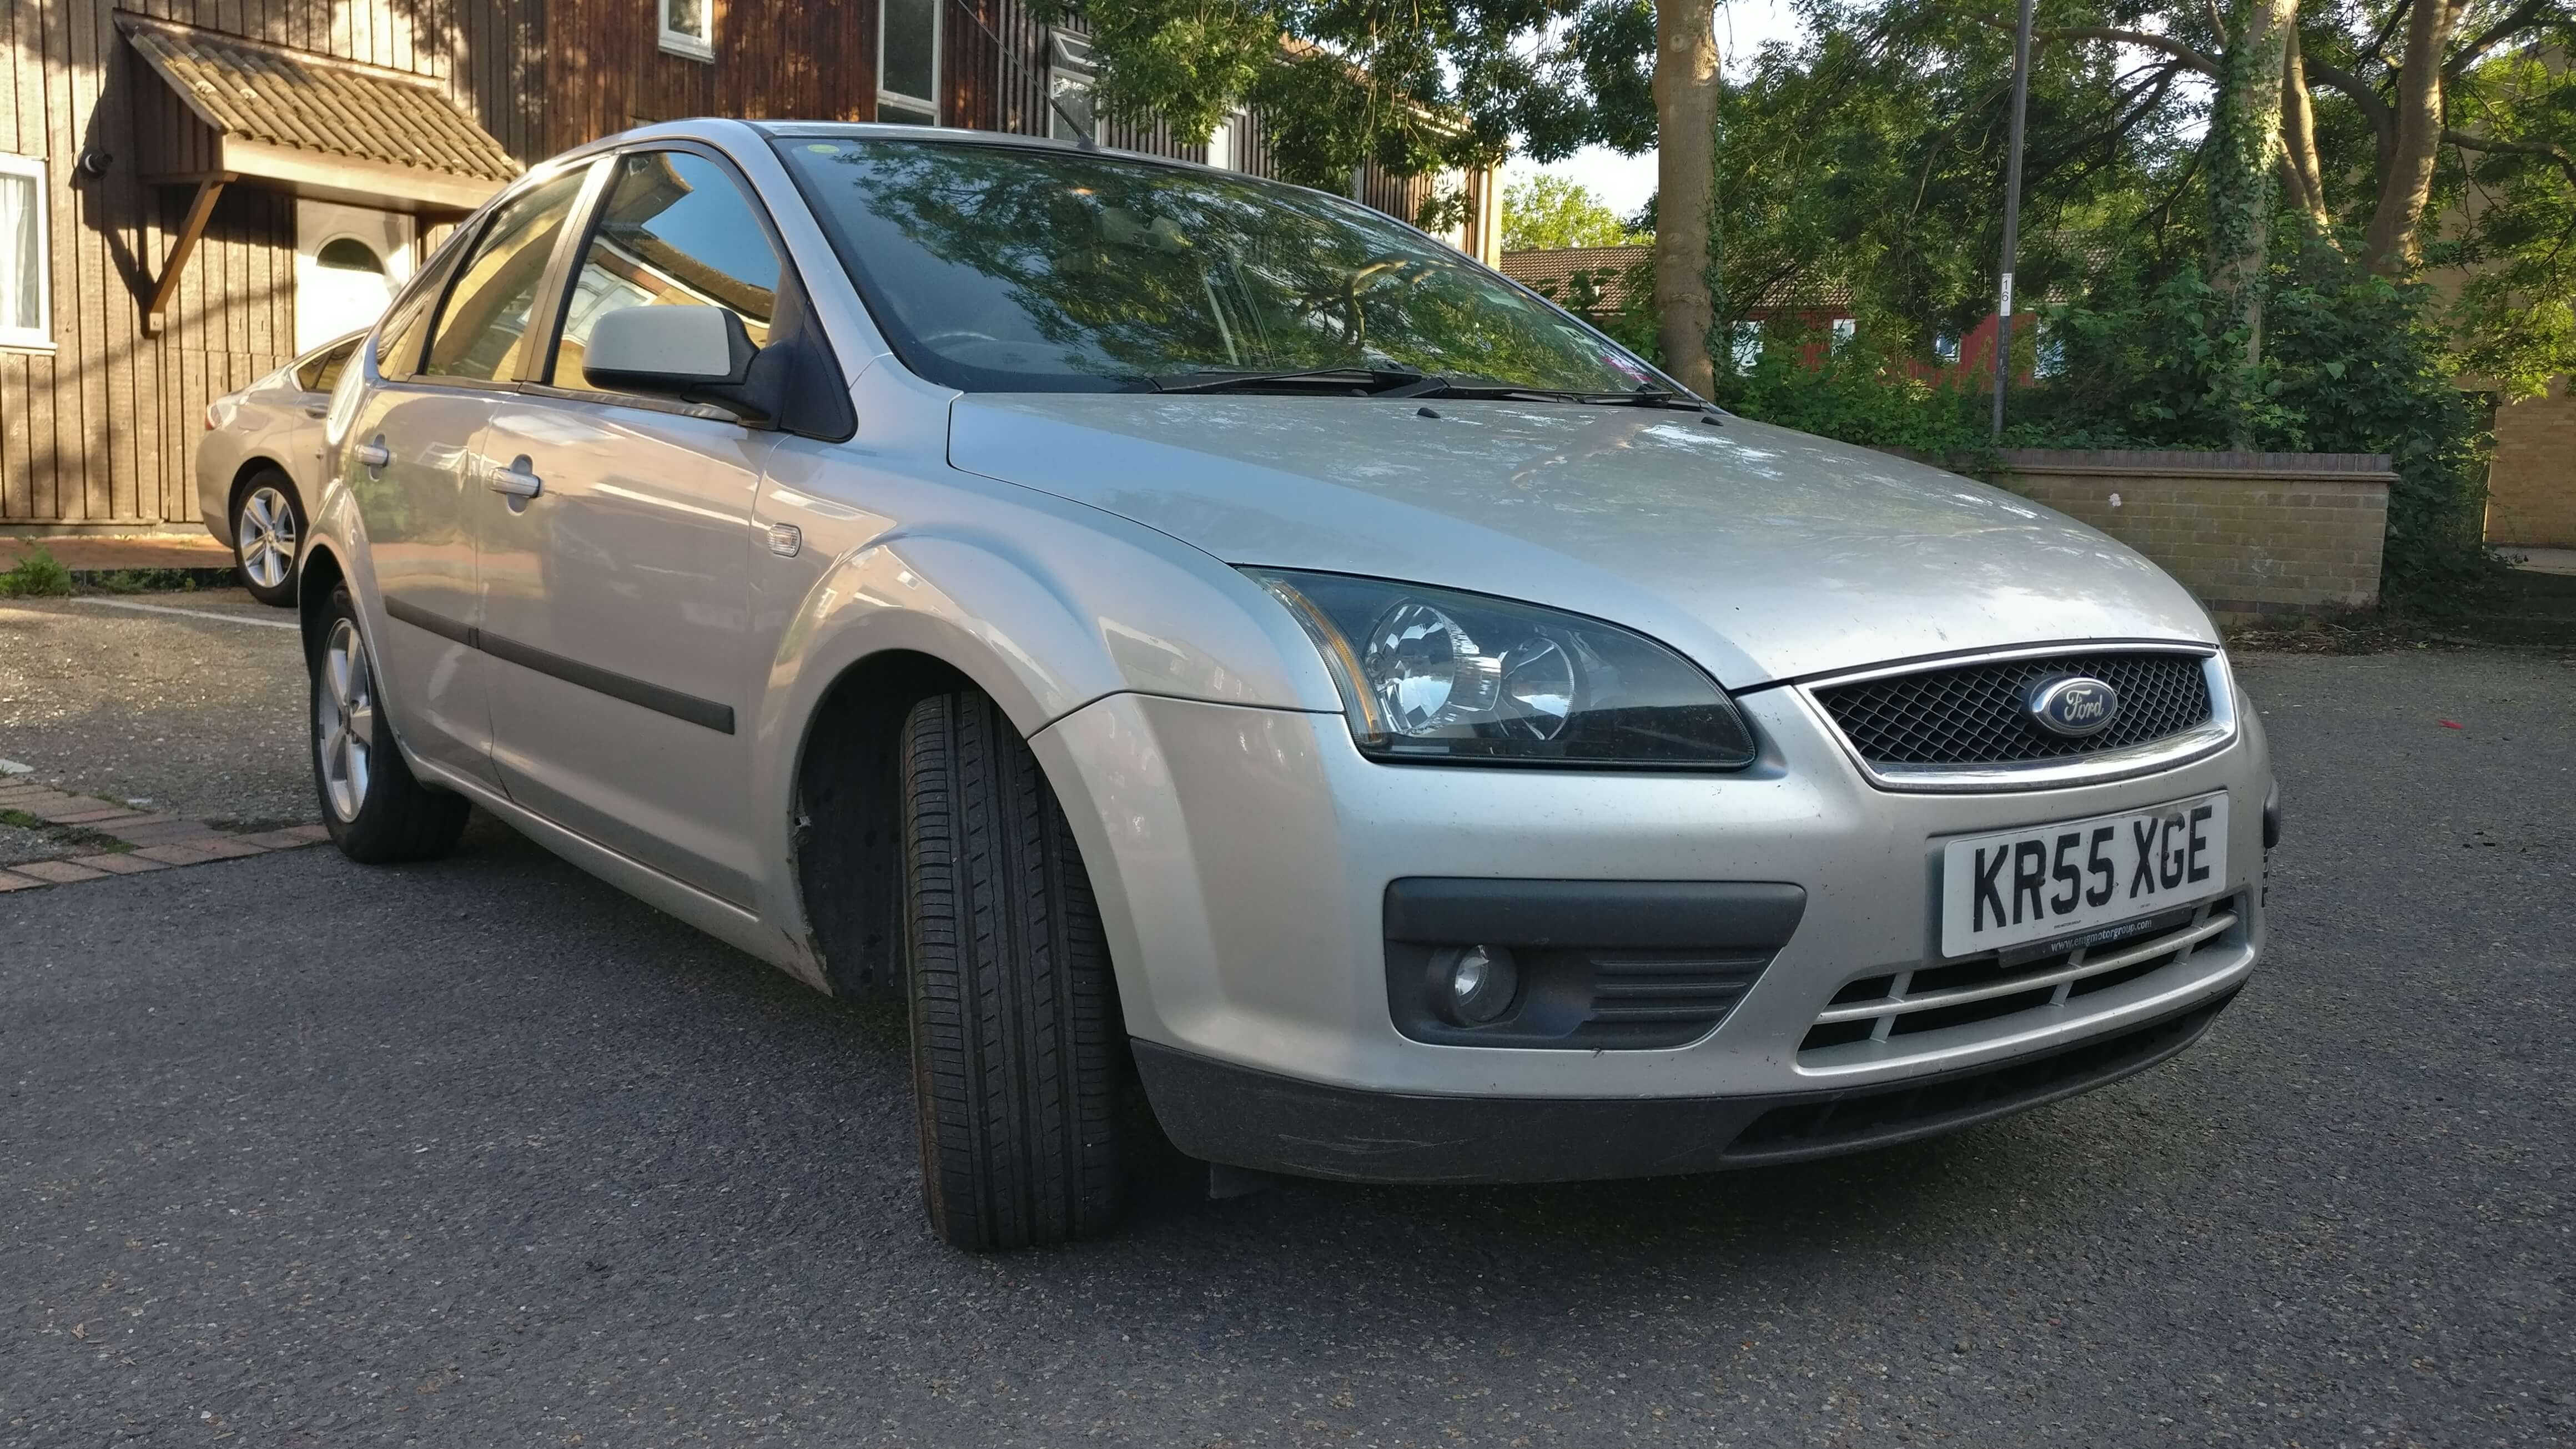 New Cambelt Ford Focus 1.6, 2005 Manual Petrol, 112,947 miles